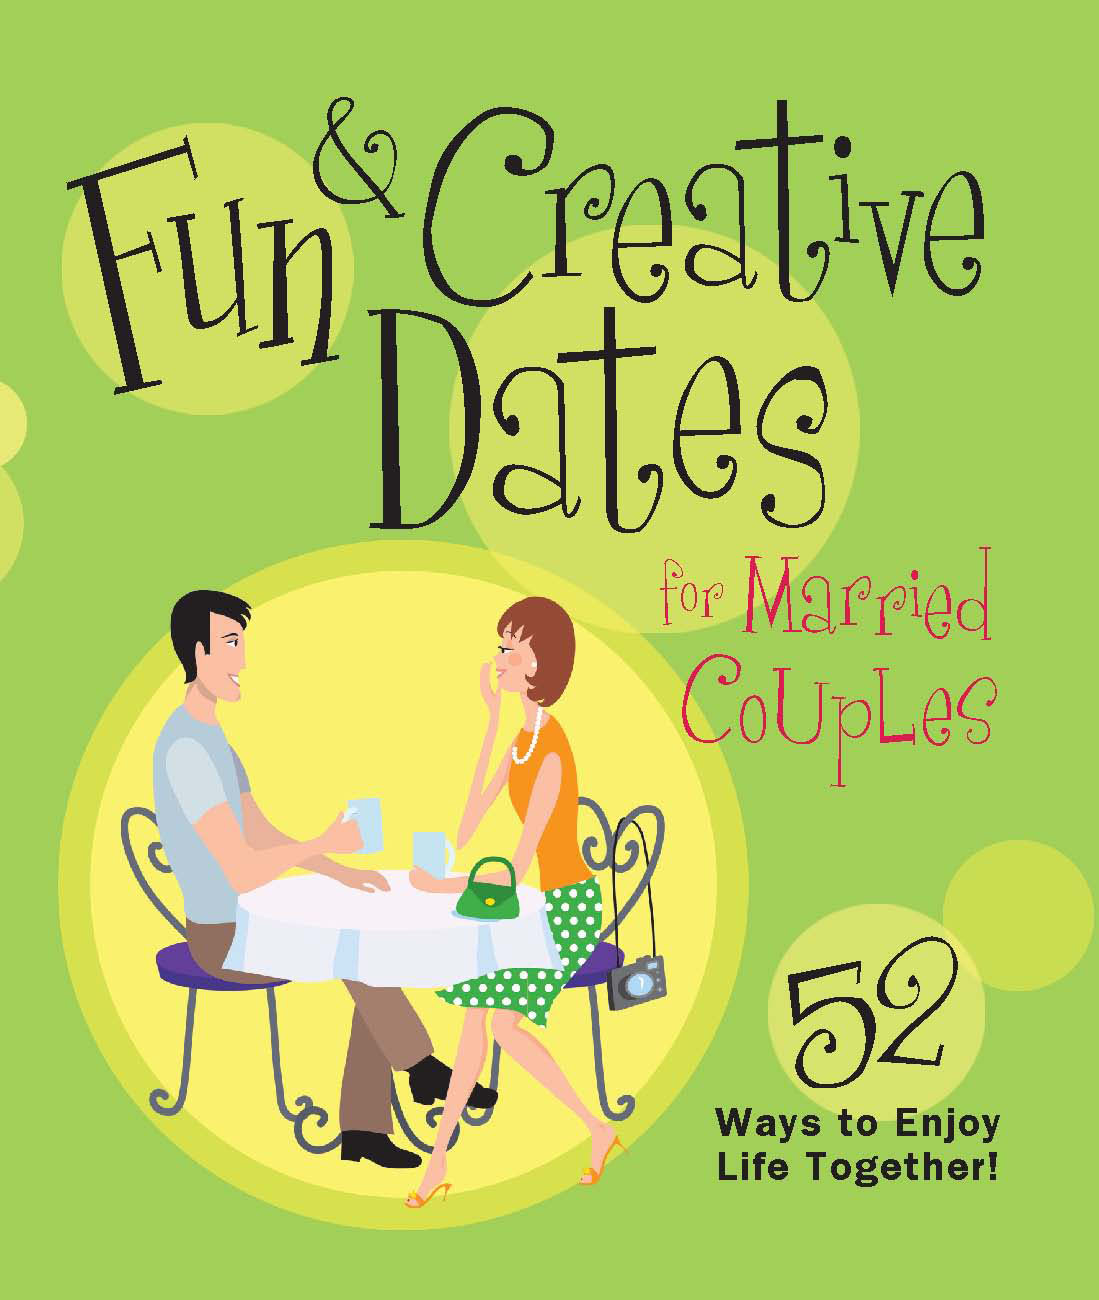 fun creative dates for married couples book by howard books